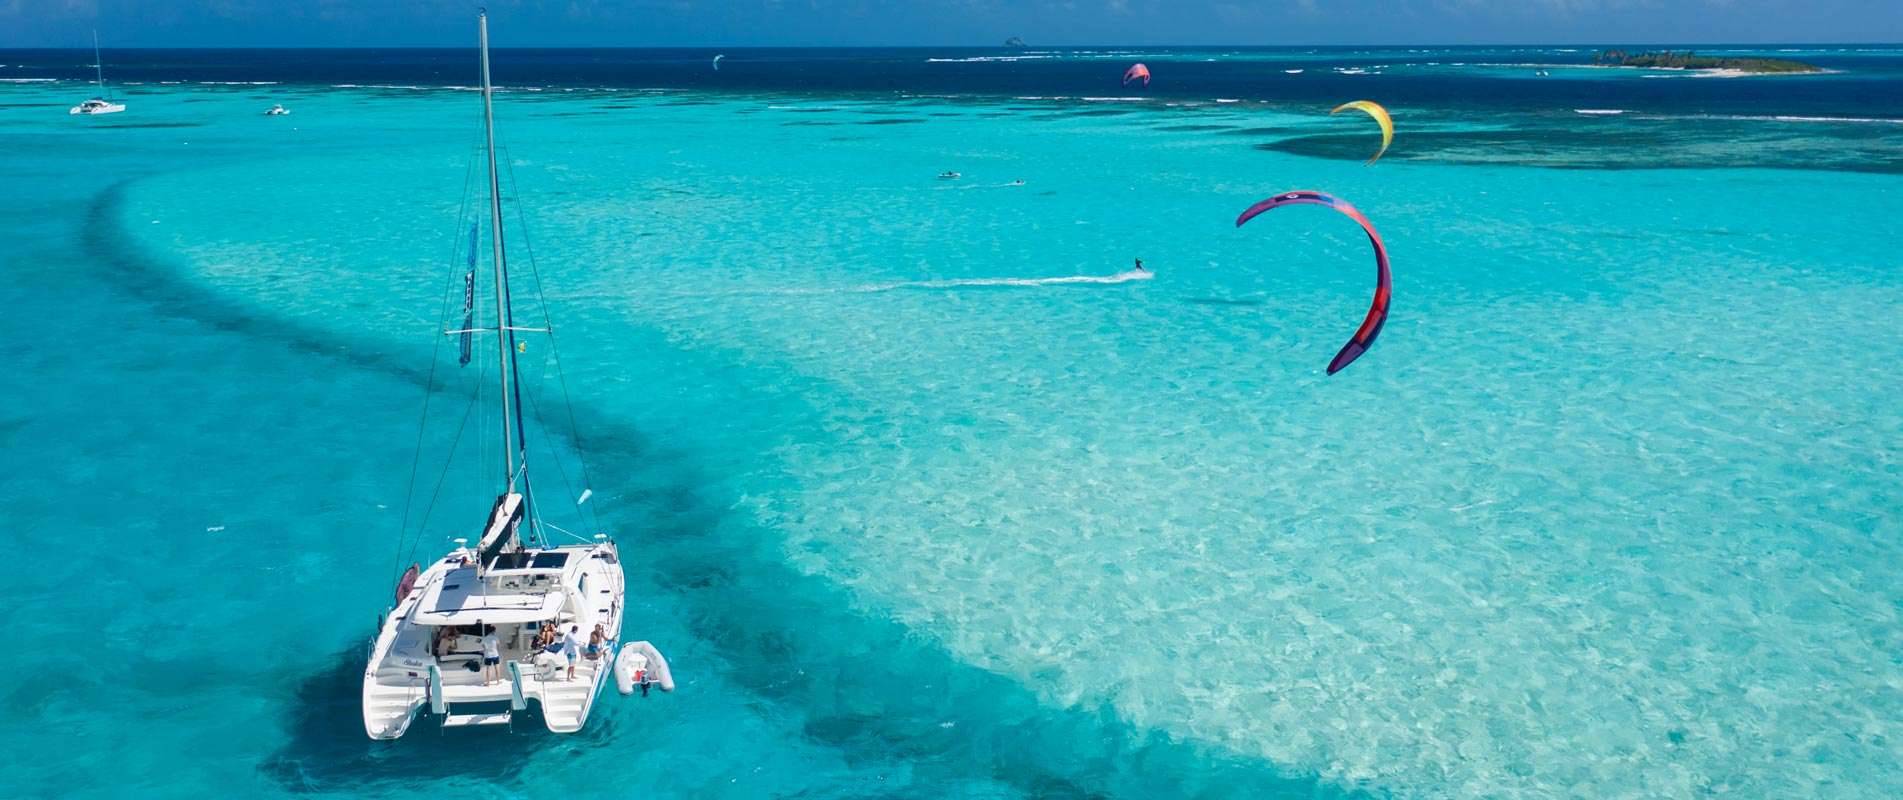 Kite Vacation in Catamaran in Tobago Cays